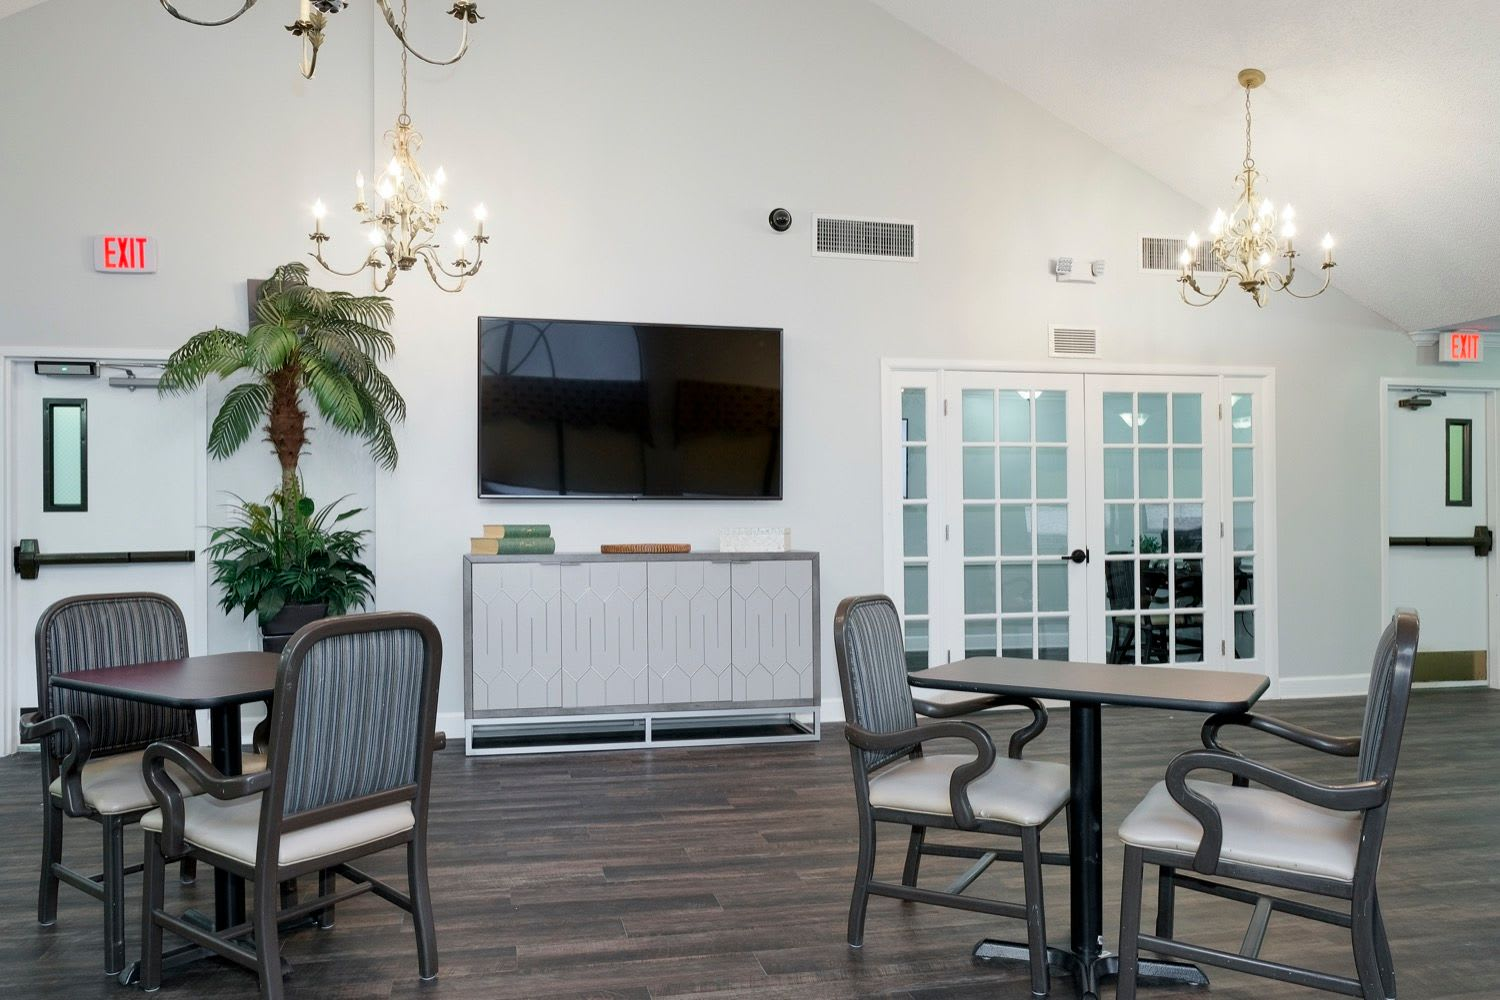 Seating area at Grand Villa of Ormond Beach in Florida